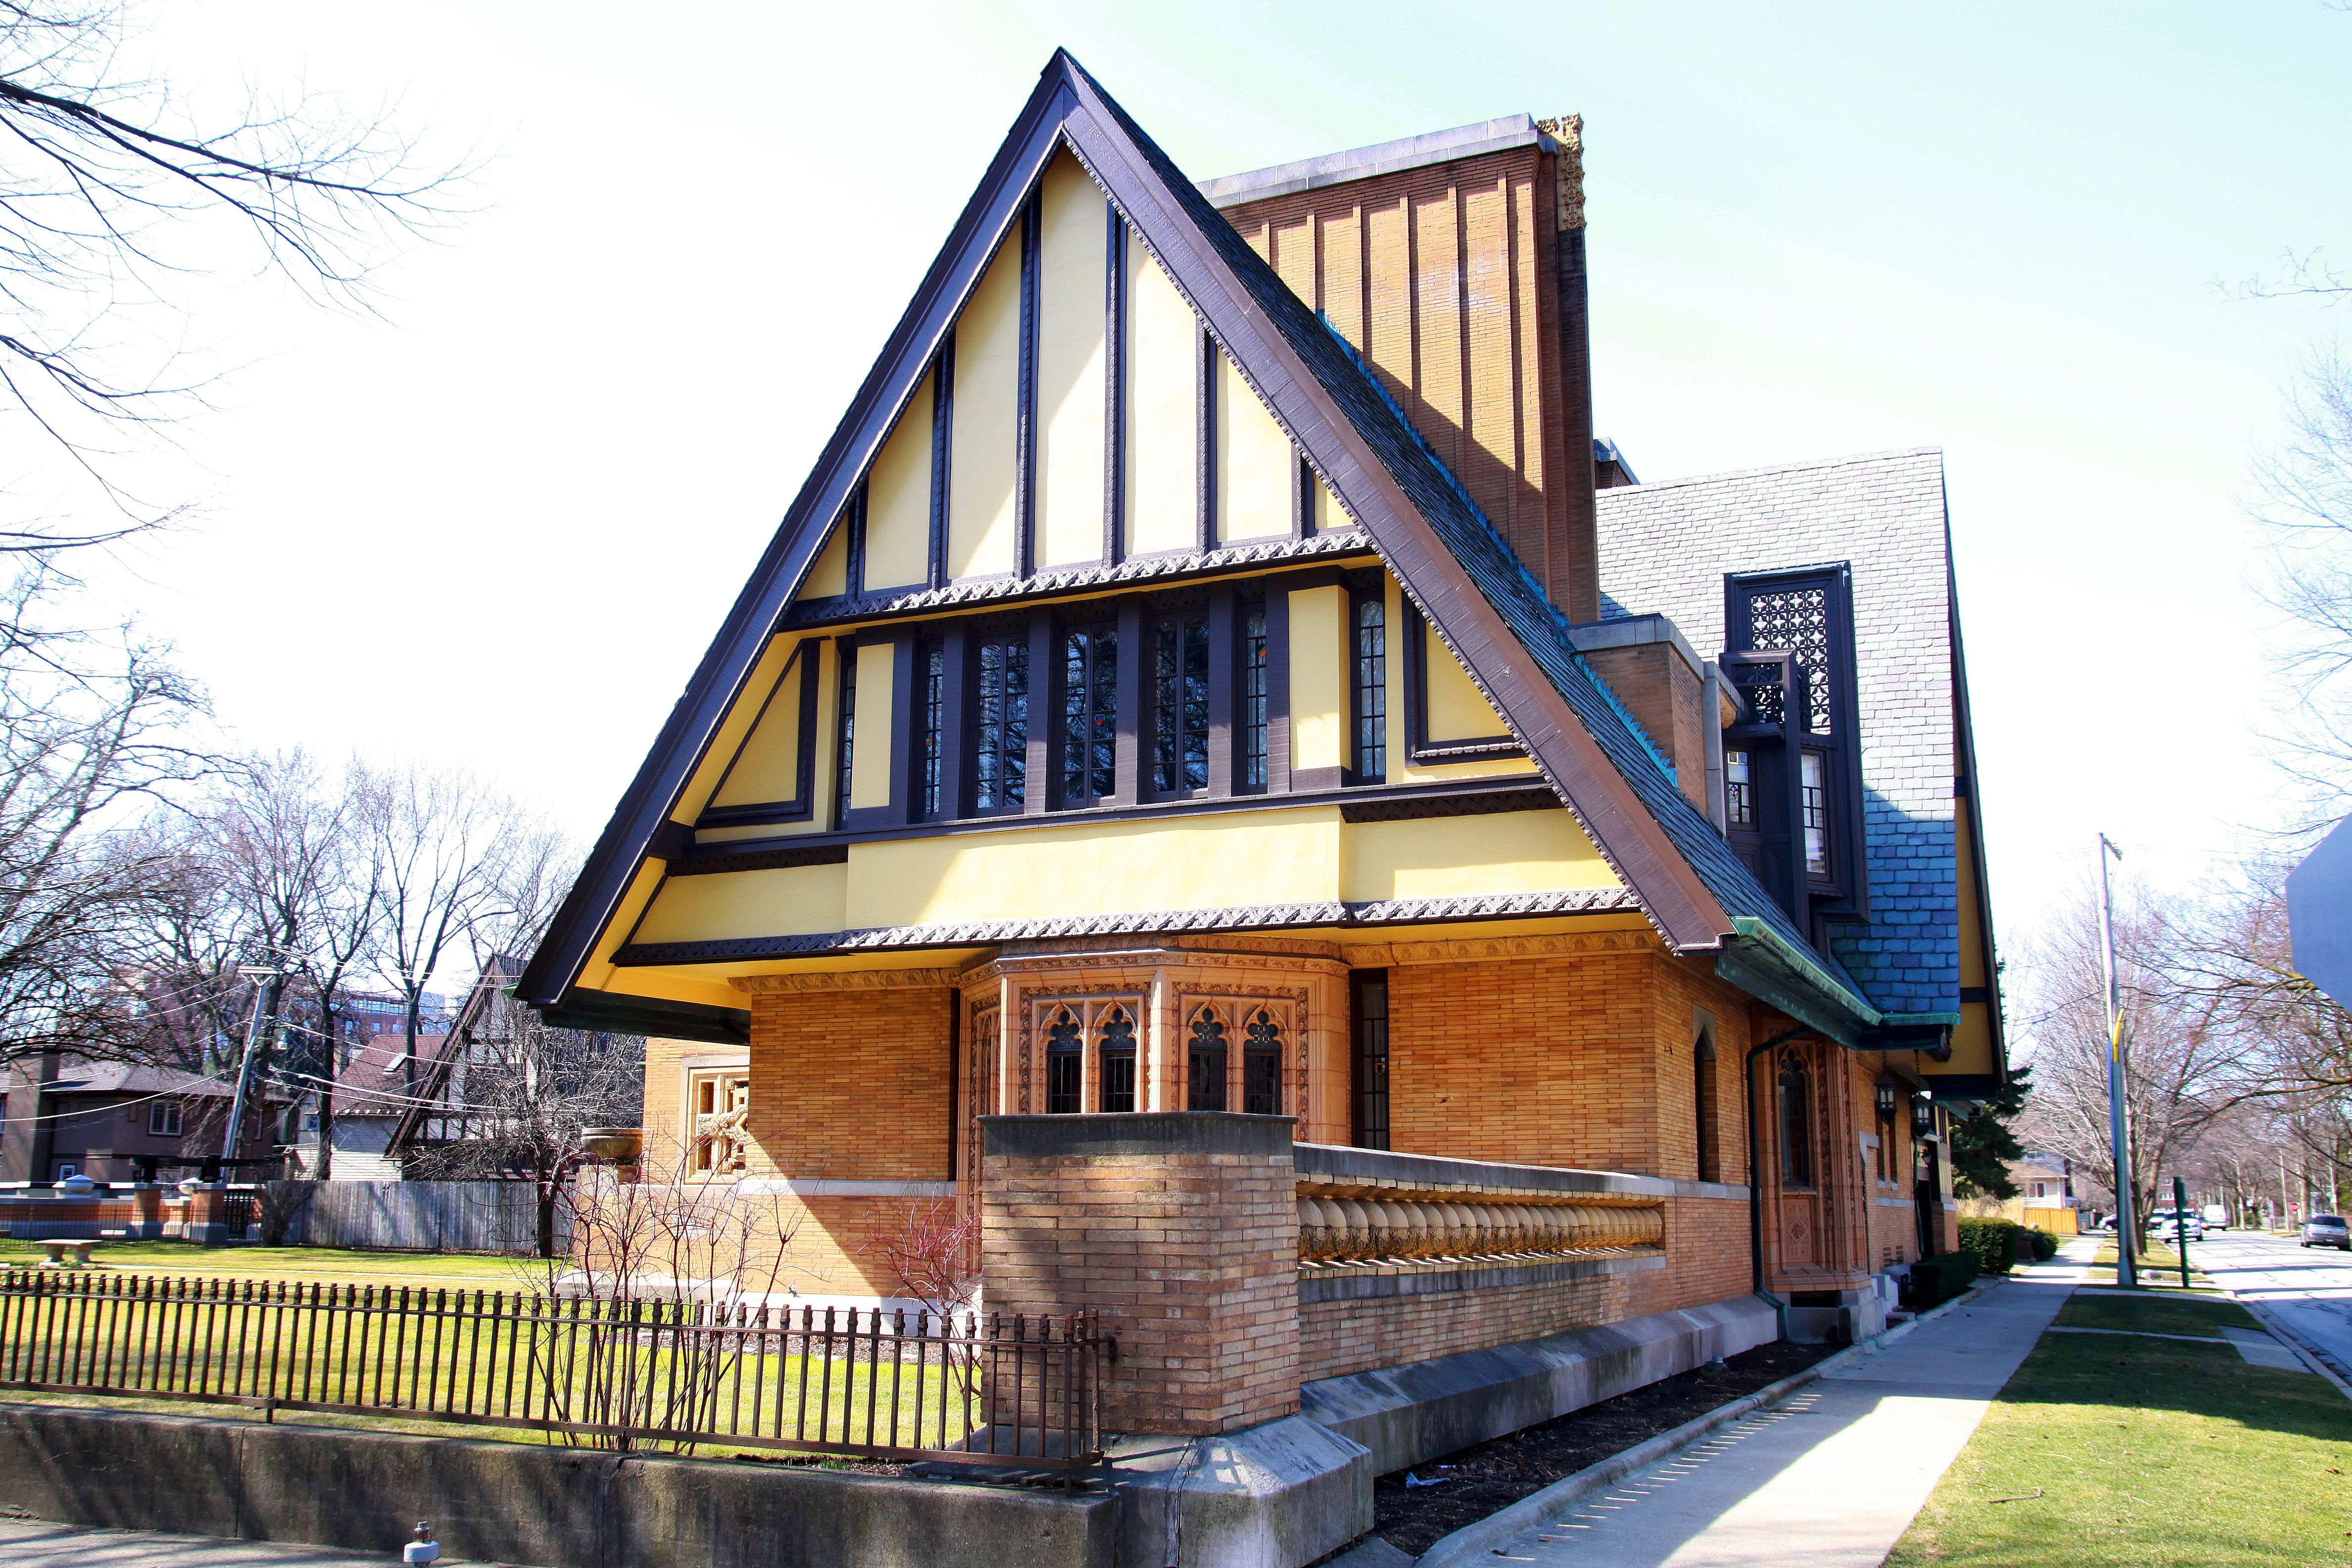 The Nathan G. Moore House, built in 1895, designed and remodeled by Frank Lloyd Wright, Oak Park, Illinois